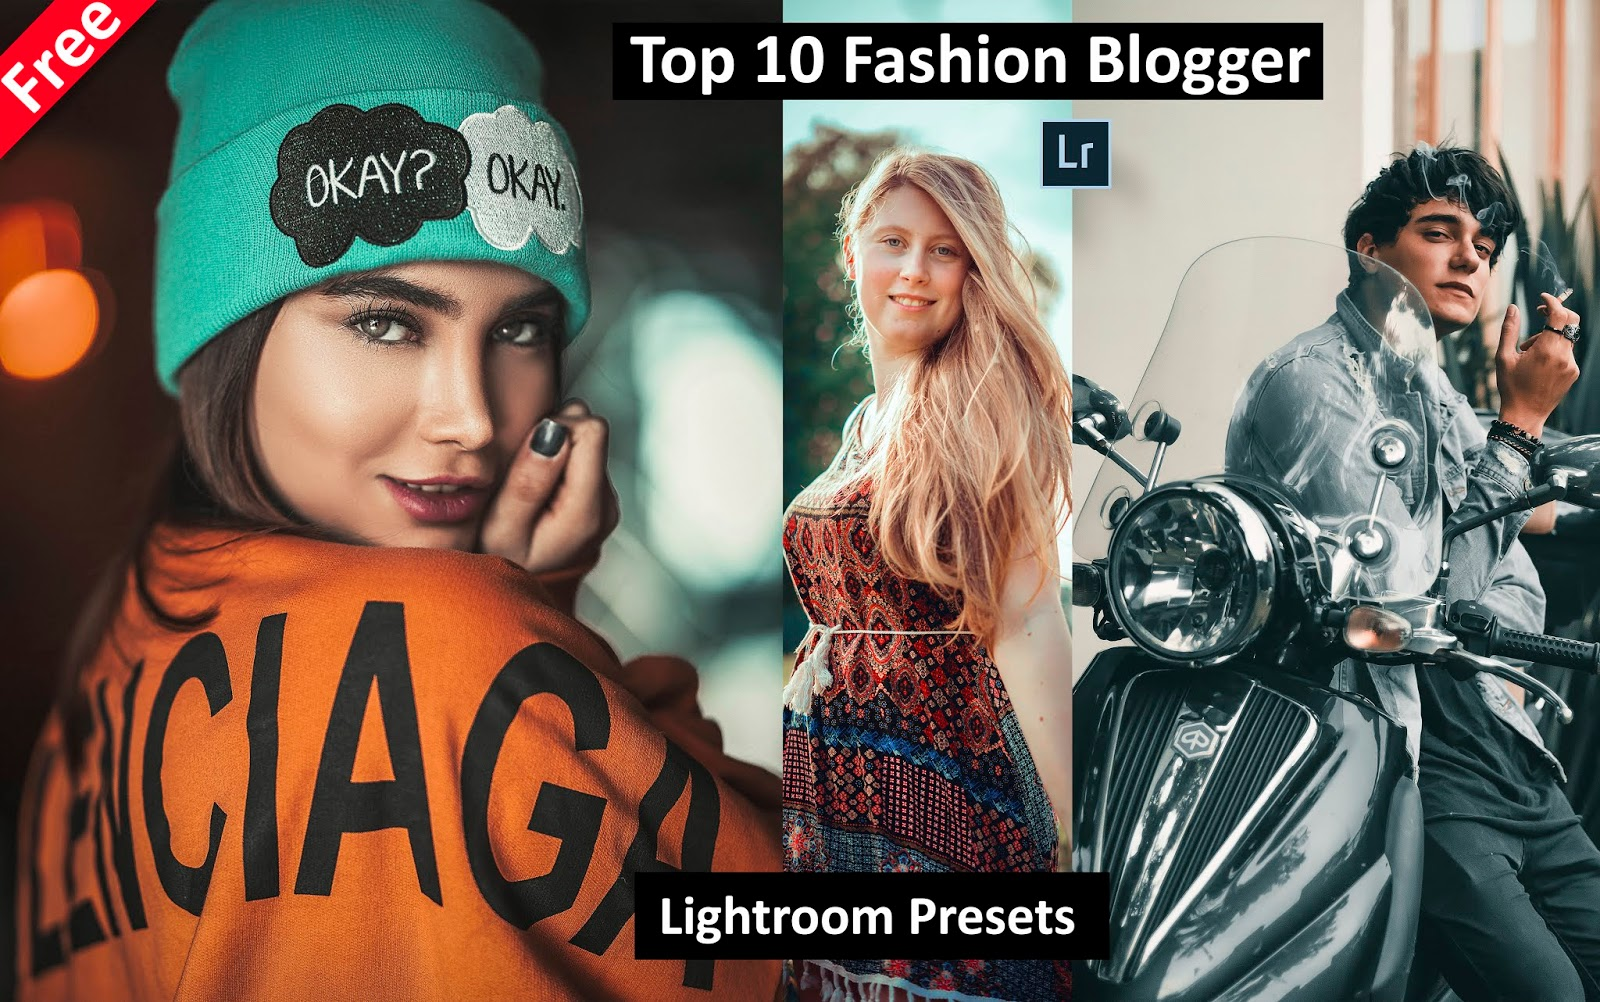 Download Top 10 Fashion Blogger Lightroom Presets for Free   How to Edit Fashion Portraits in Lightroom